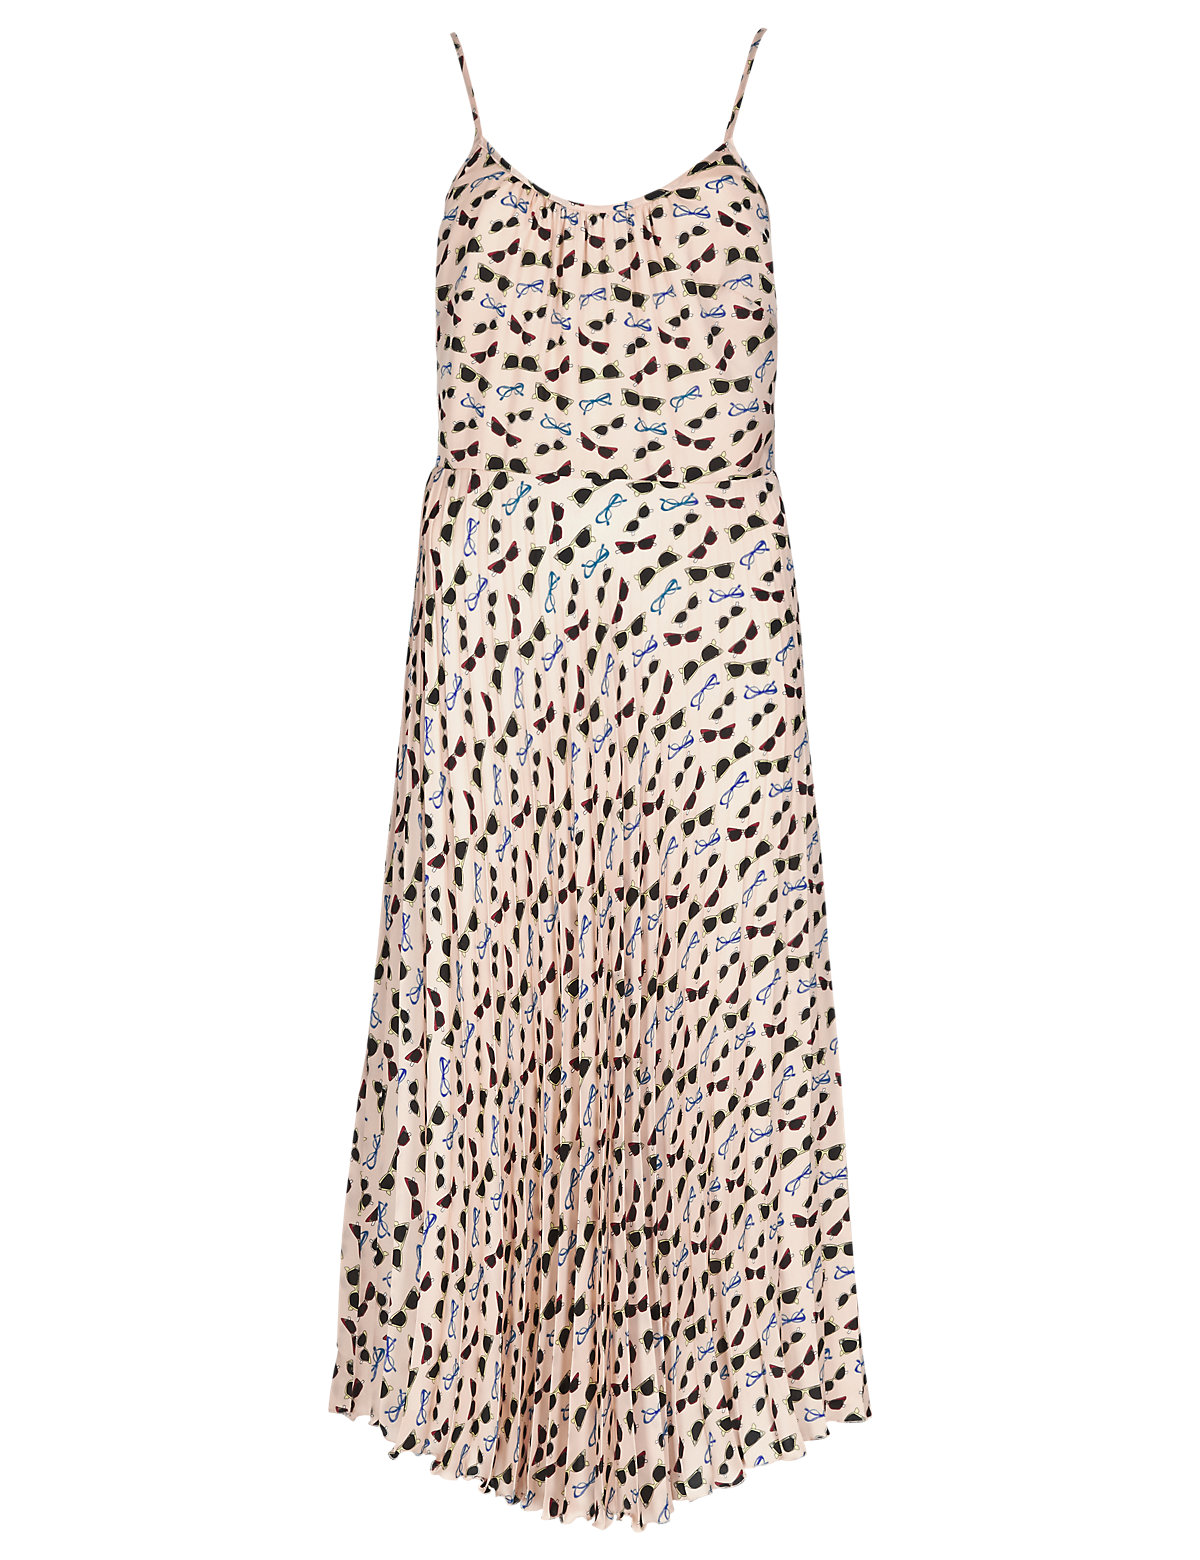 Sunglasses Print Midi Dress £49.50